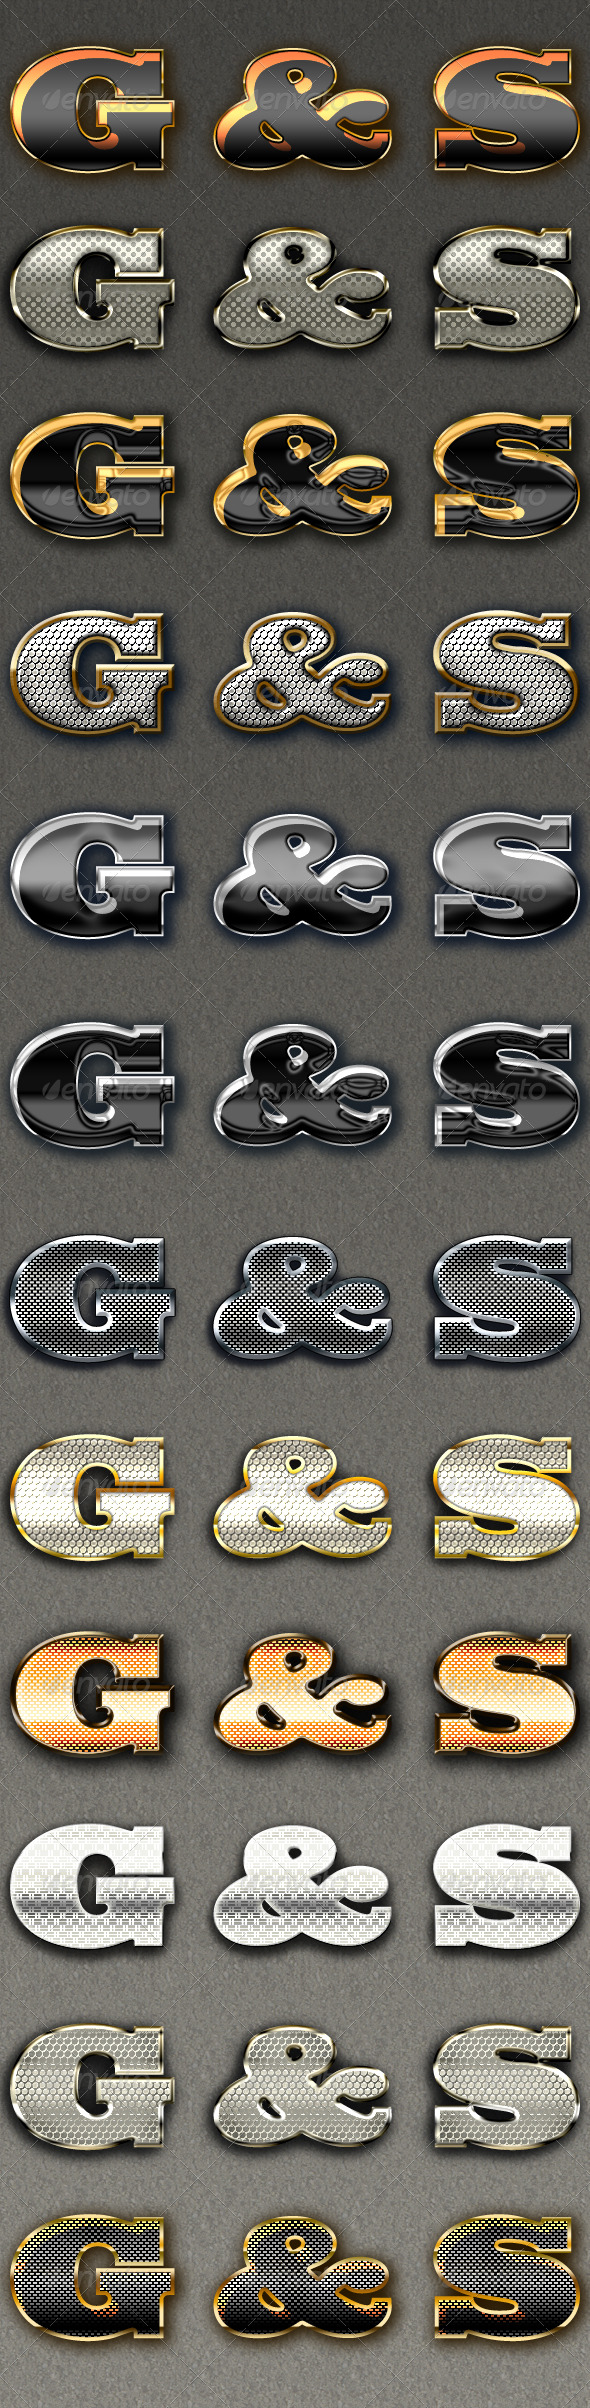 Gold and Silver Text Effects v.2 - Text Effects Styles